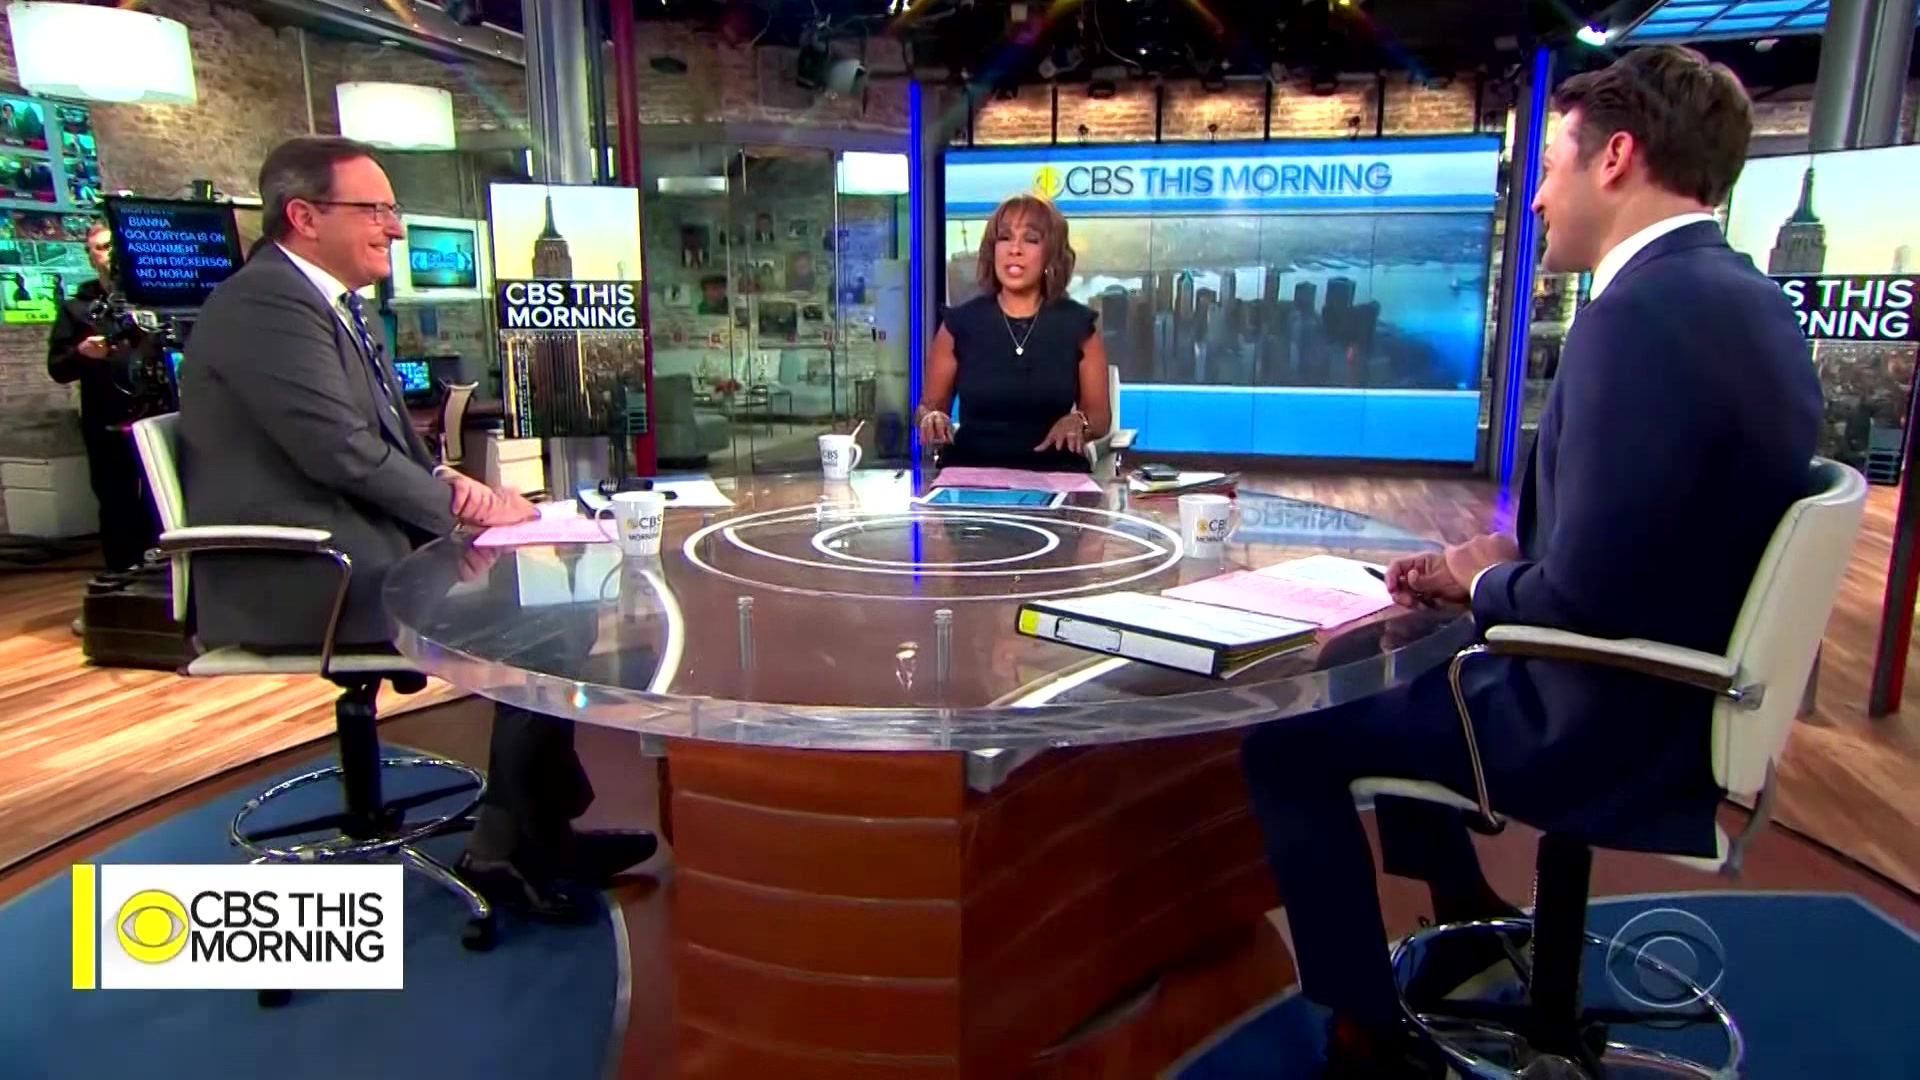 Cbs News Announces Anchor Changes At Cbs This Morning And Cbs Evening News